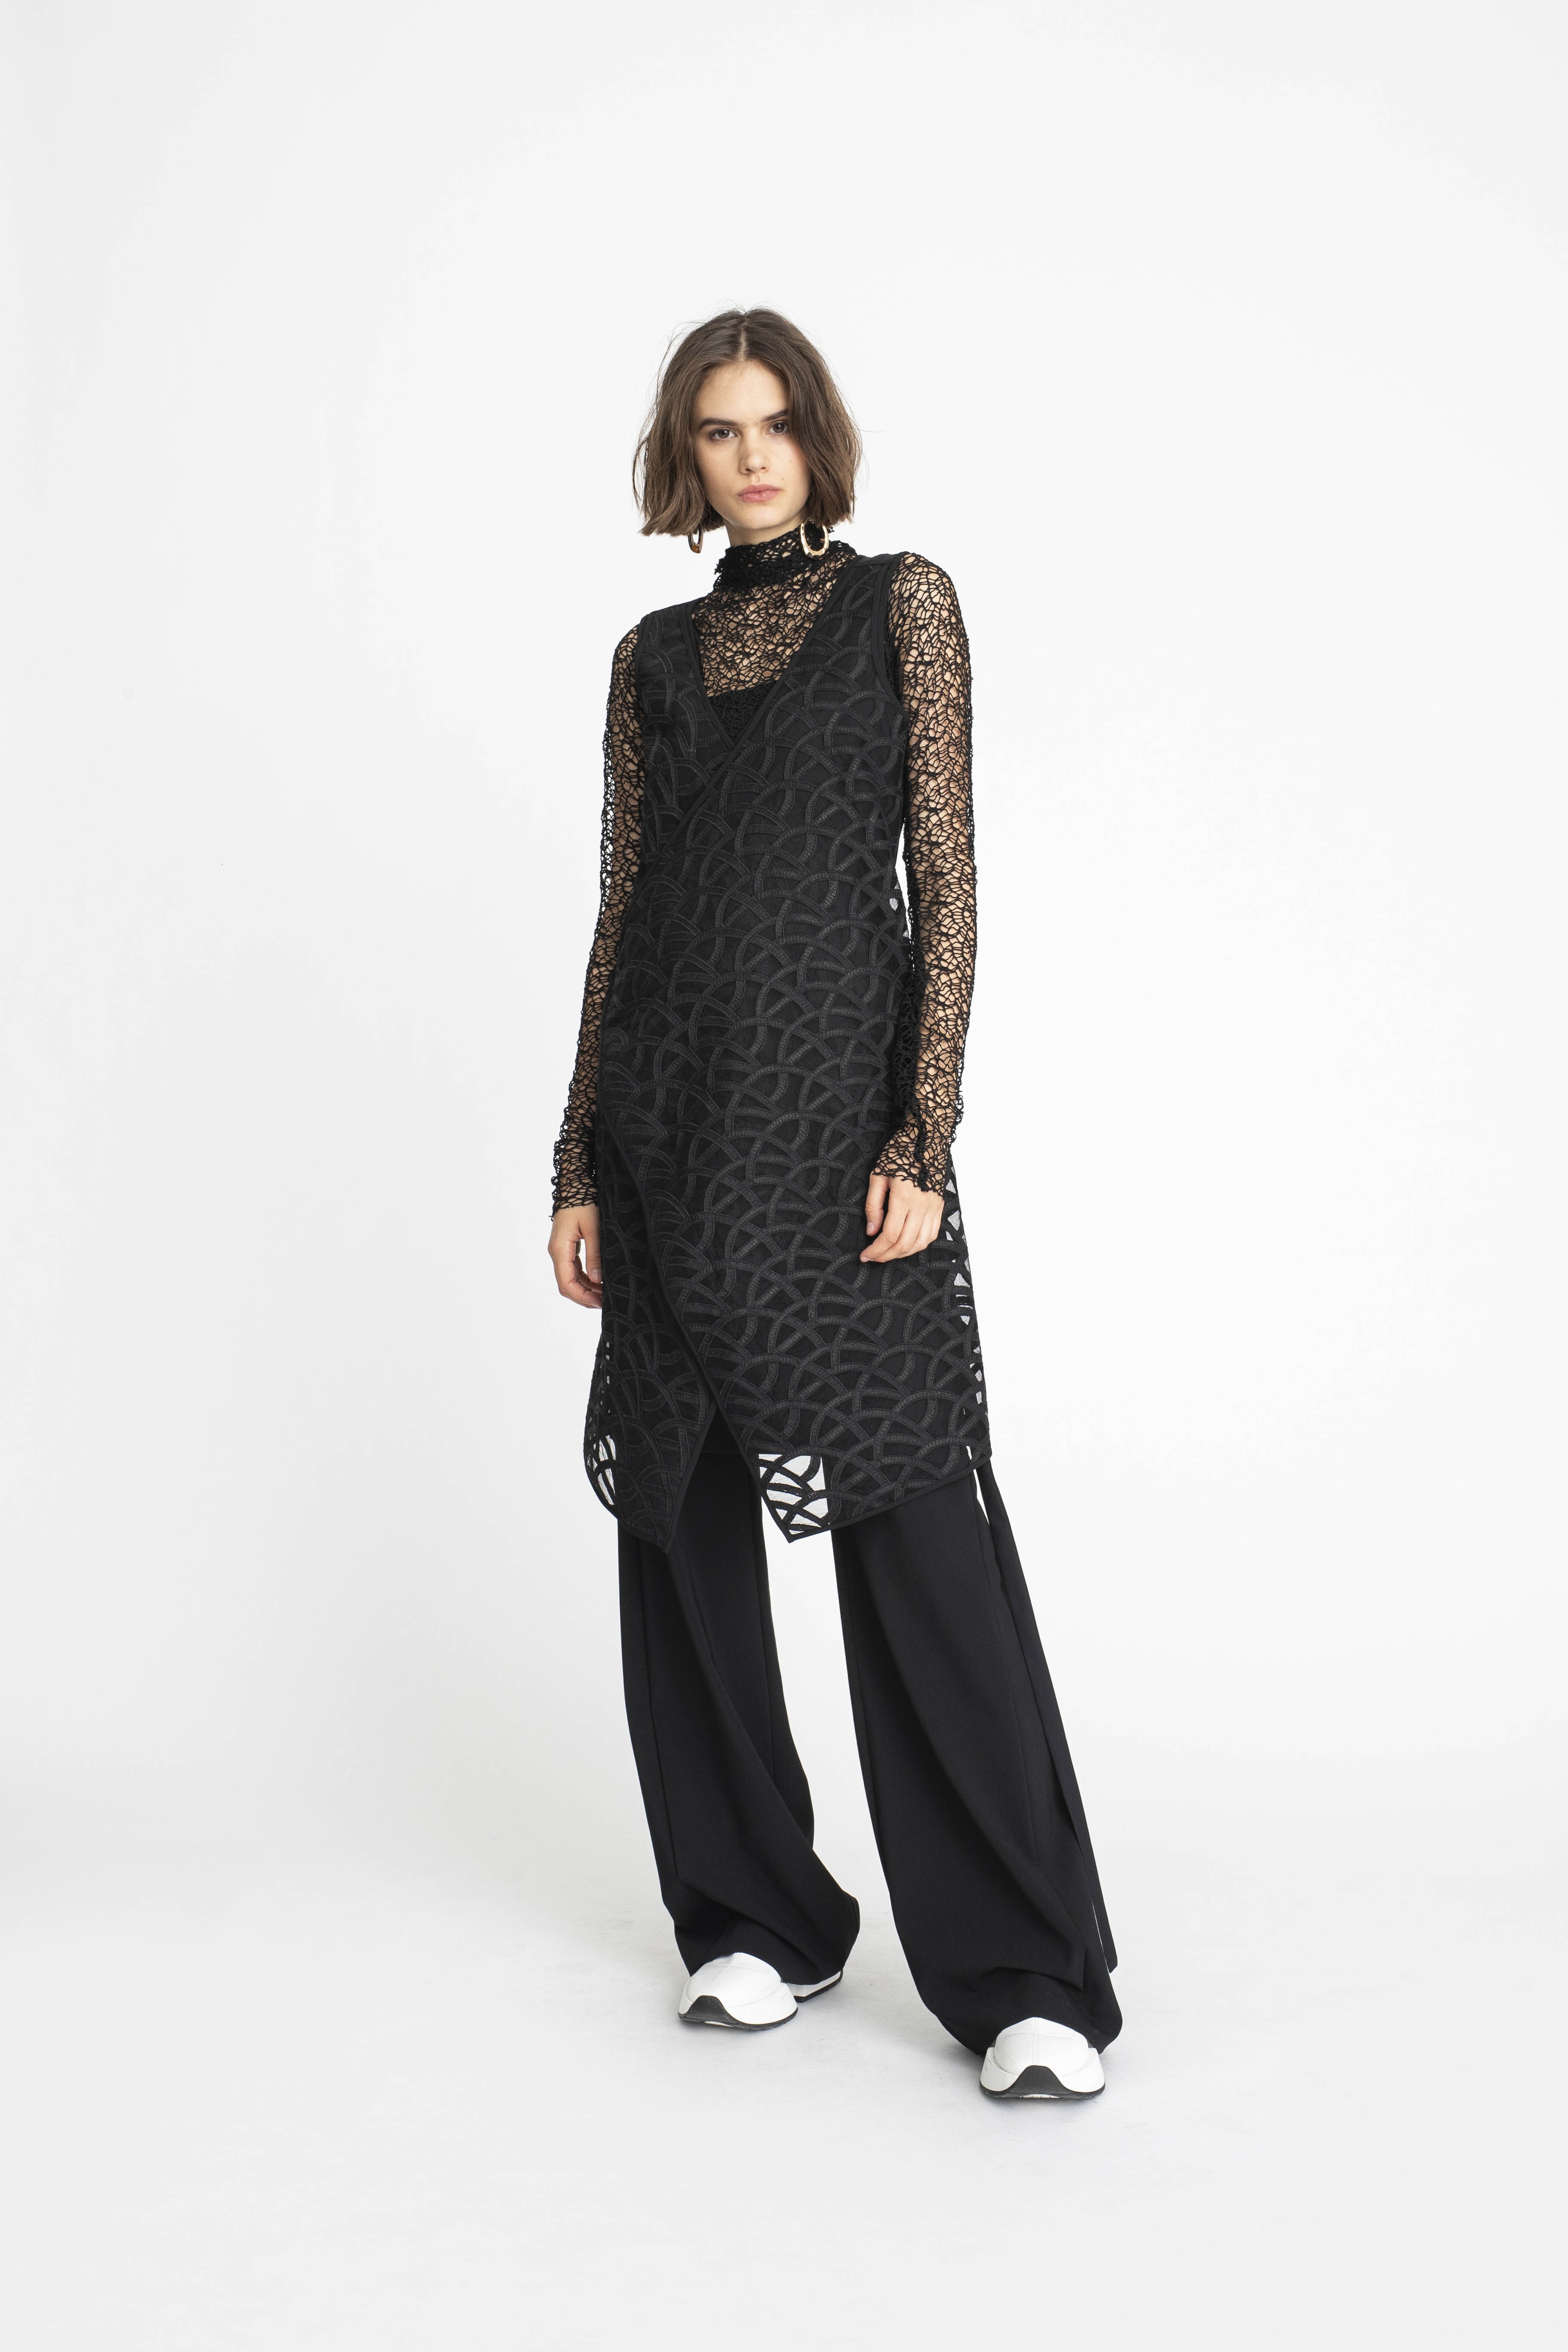 Cluster-Dress_Undone-Tunic_Panelled-Joust-Pant_TaylorBoutique_AW19_L94_2130 2